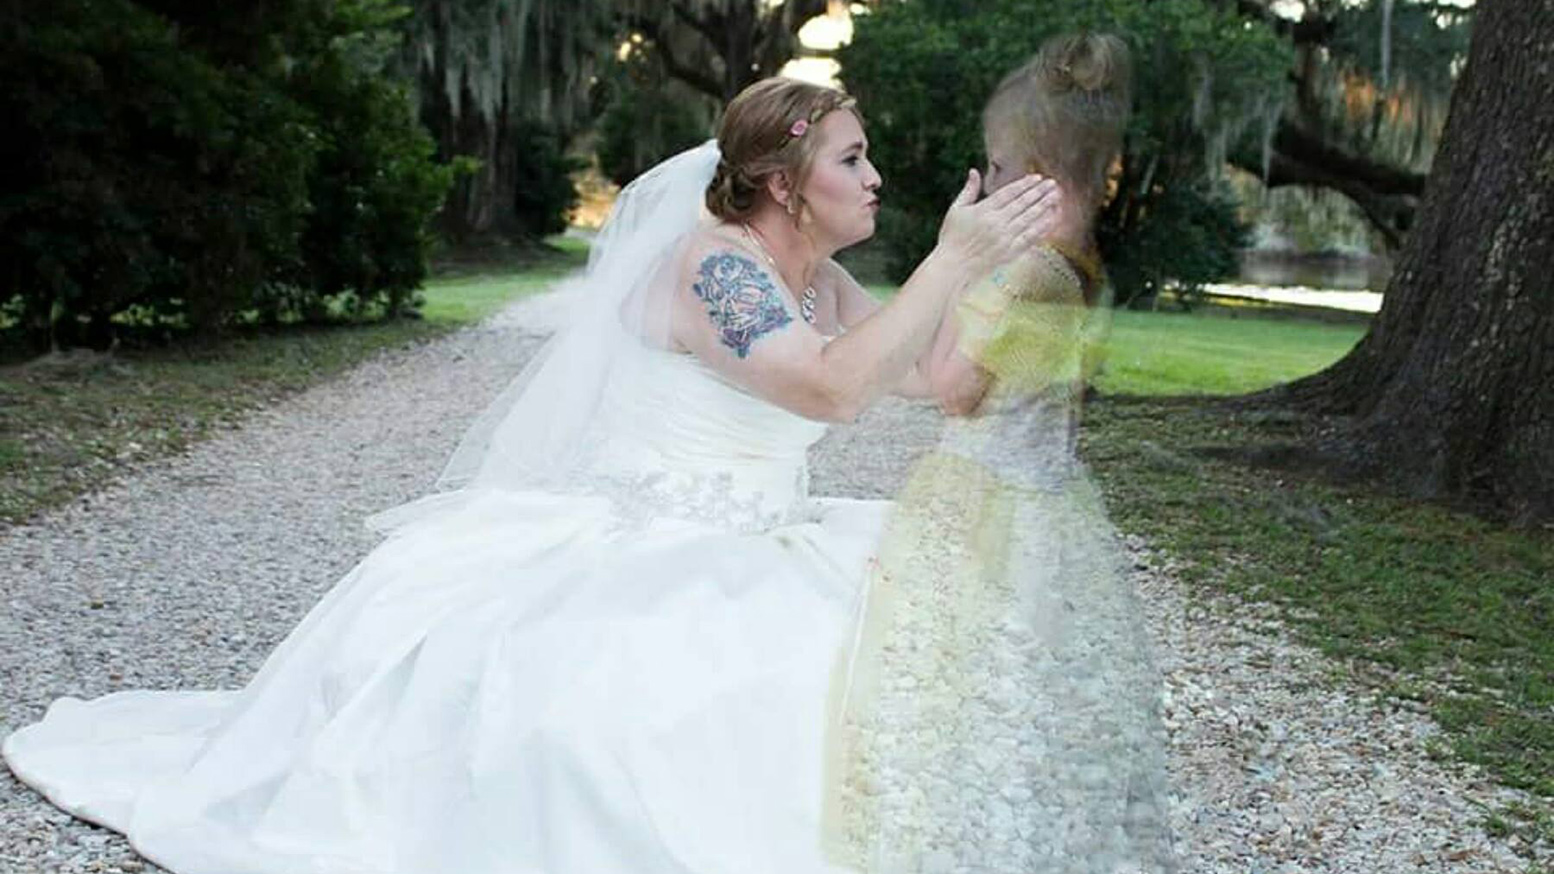 bride and late daughter reunite in viral wedding photos